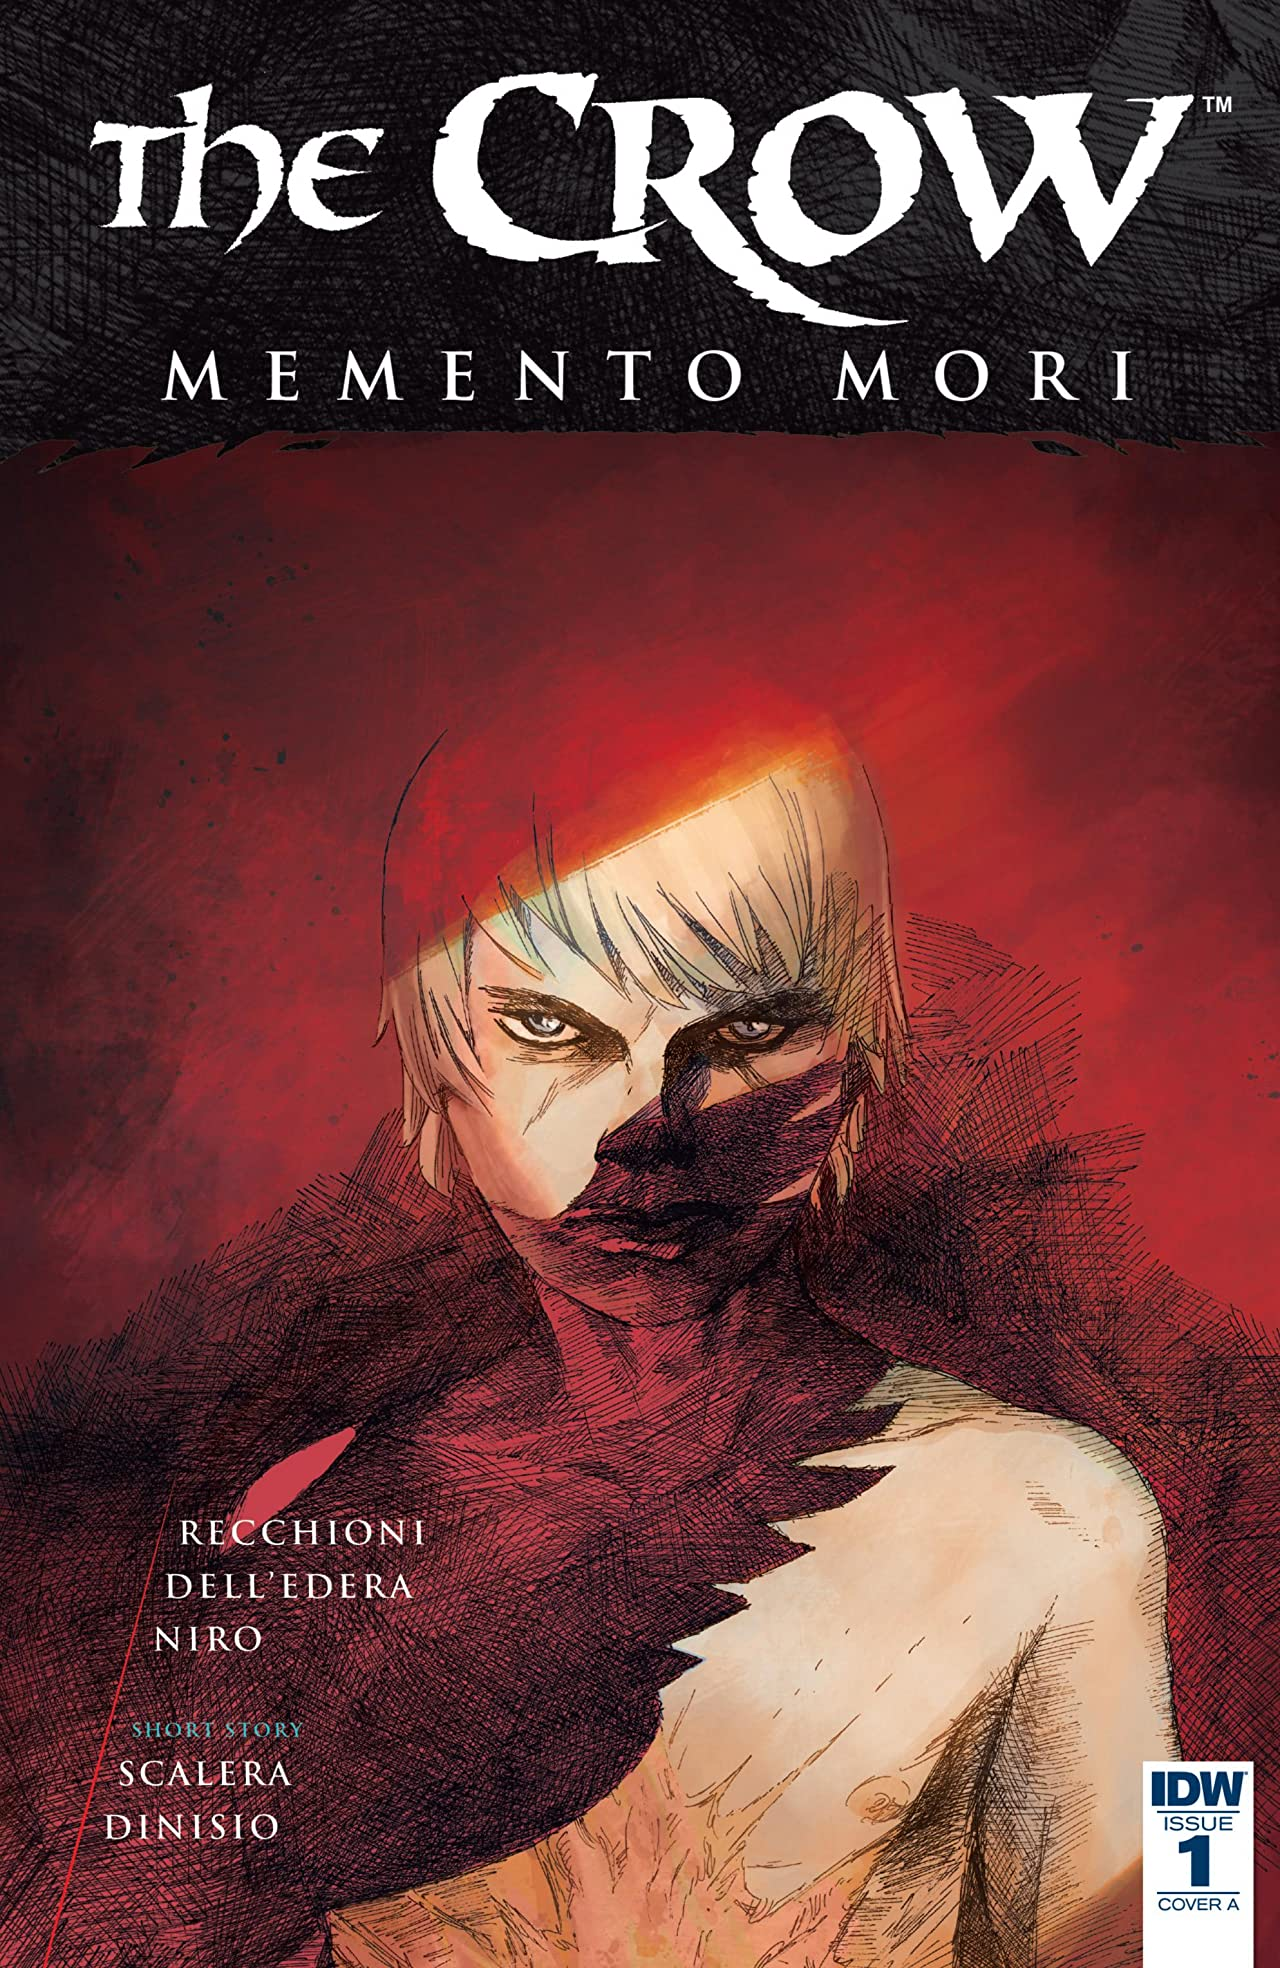 The Crow: Memento Mori No.1